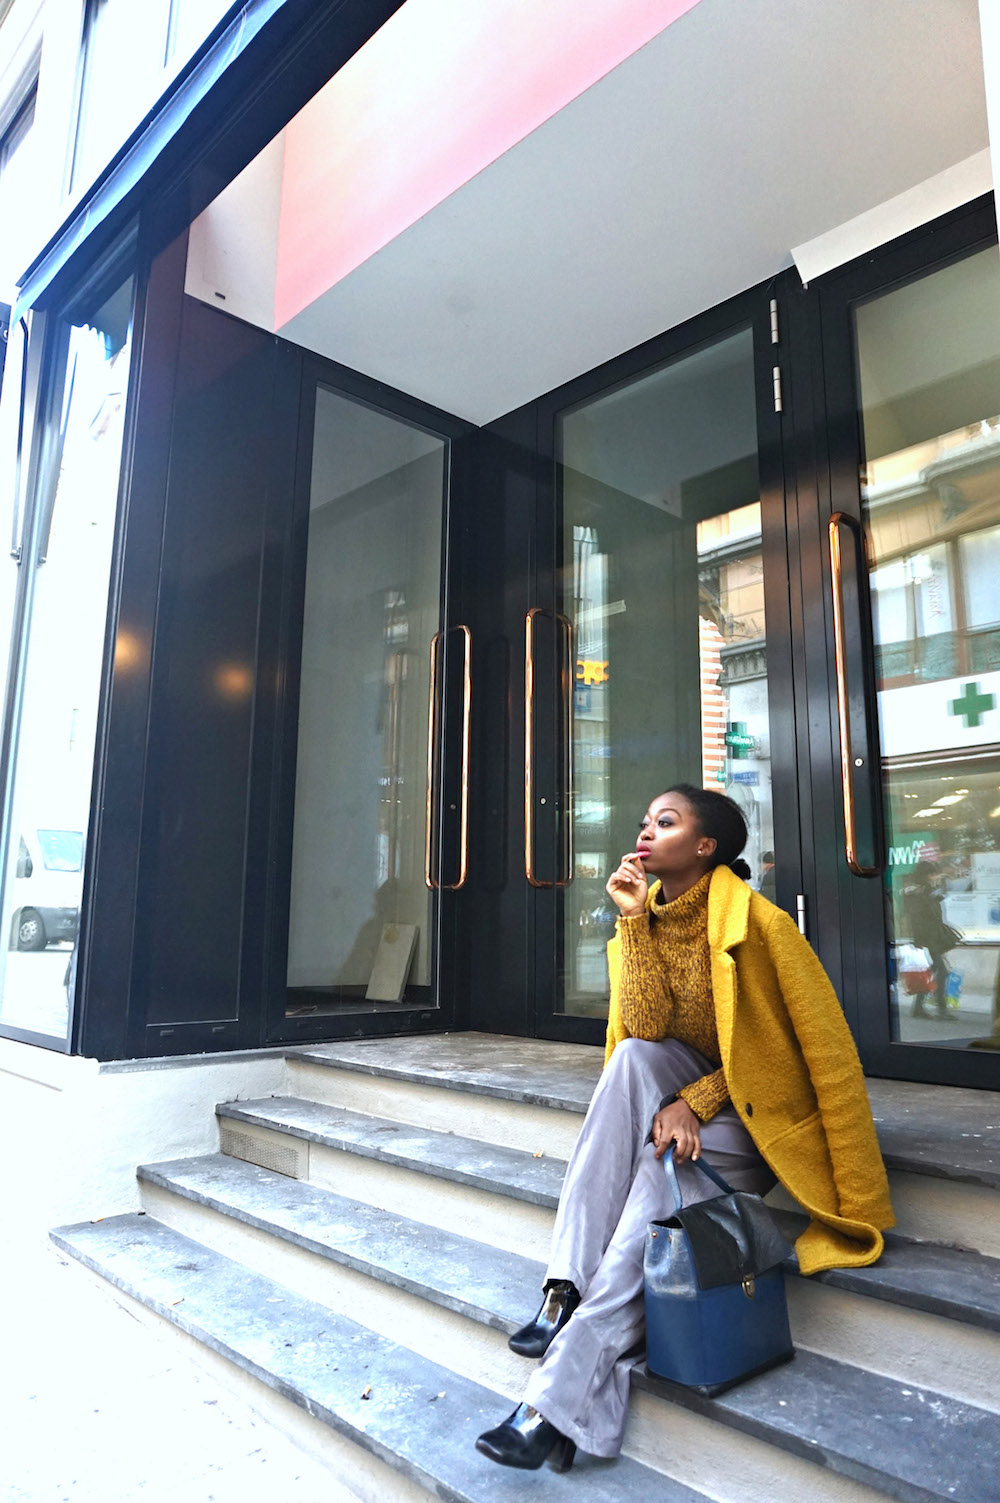 style-is-more-about-being-yourself-aboutyouch-lausanne-flon-stfrancois-riponne-unil-belair-geneve-idee-look-mode-stephanie-blog-sgturningpointcom